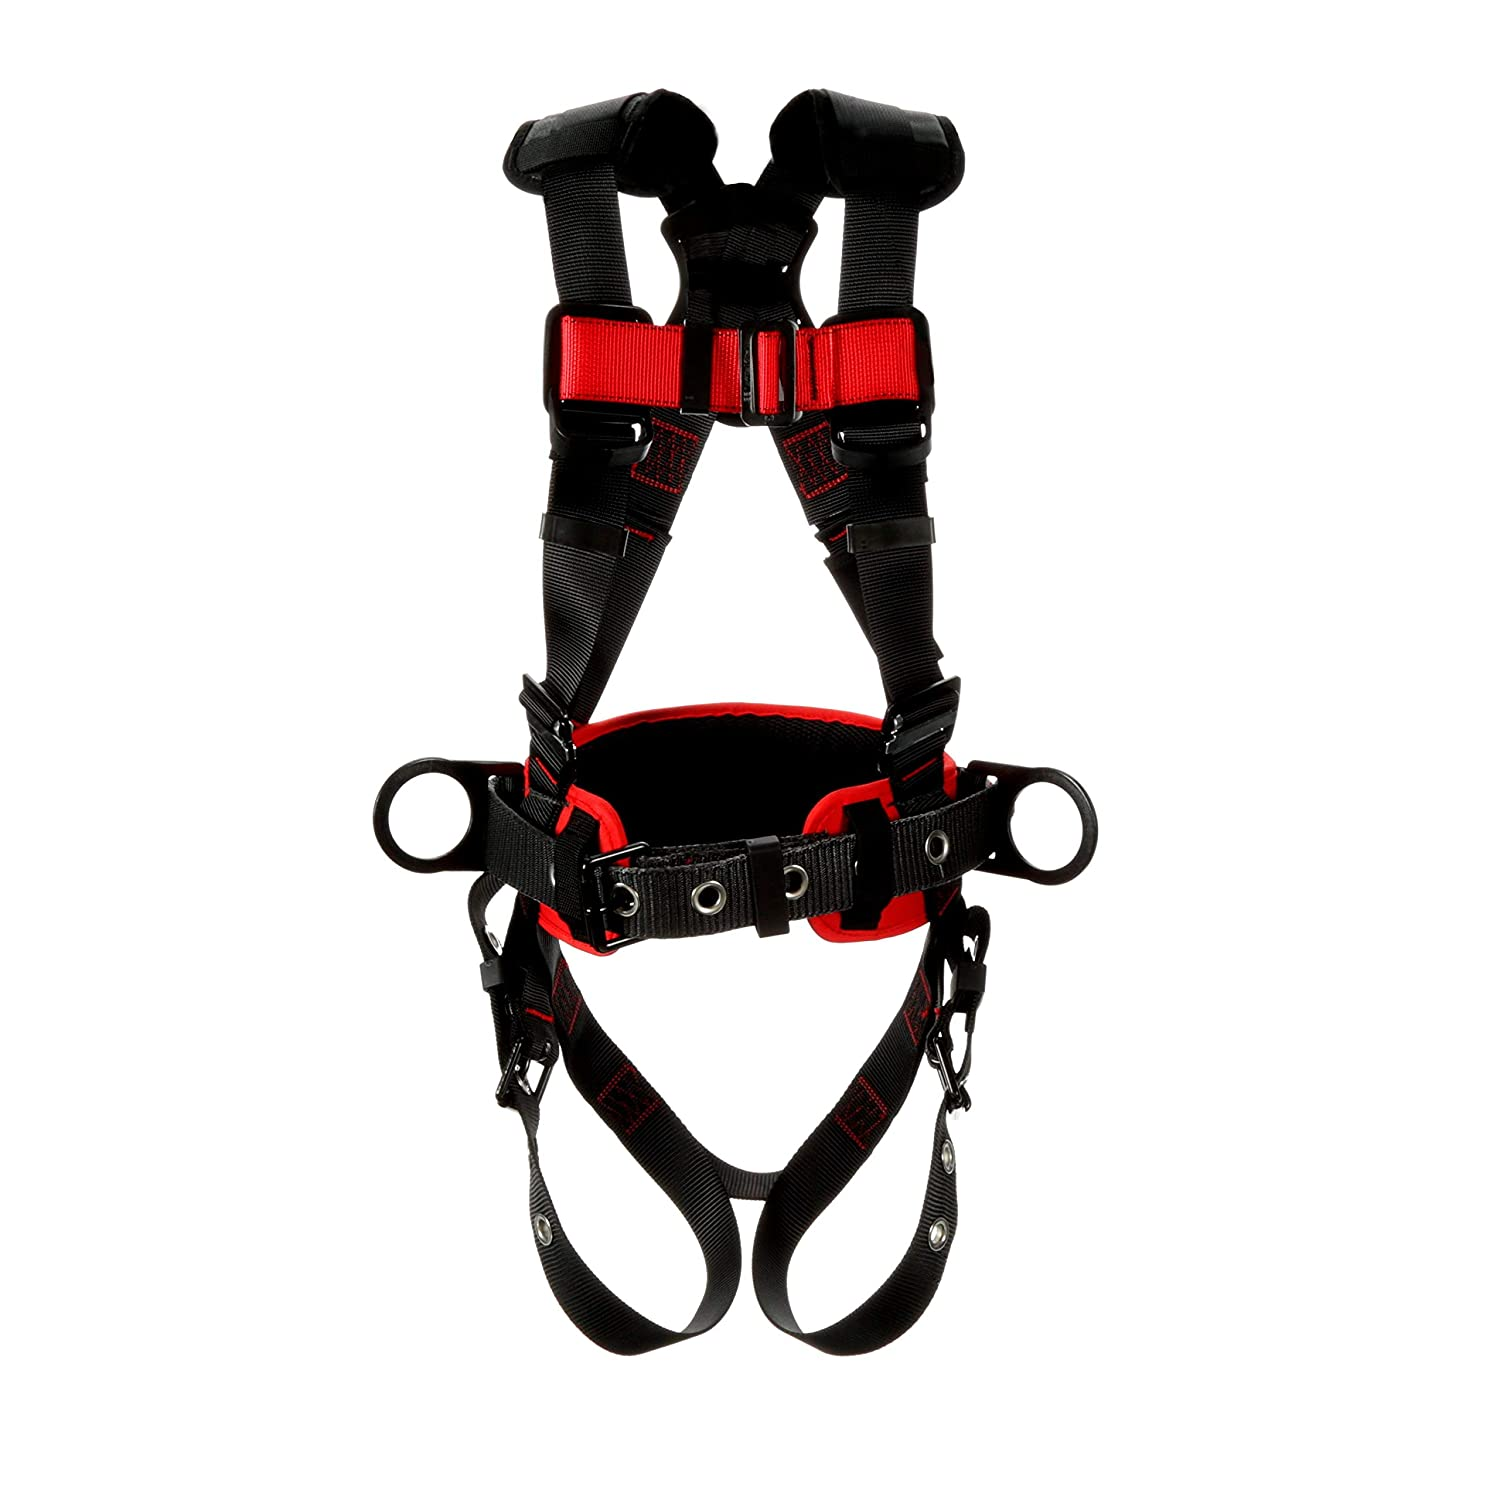 3M Fall Protection Business Protecta Construction Style Positioning Harness 1161308, Black, Small, 1 Each/Case